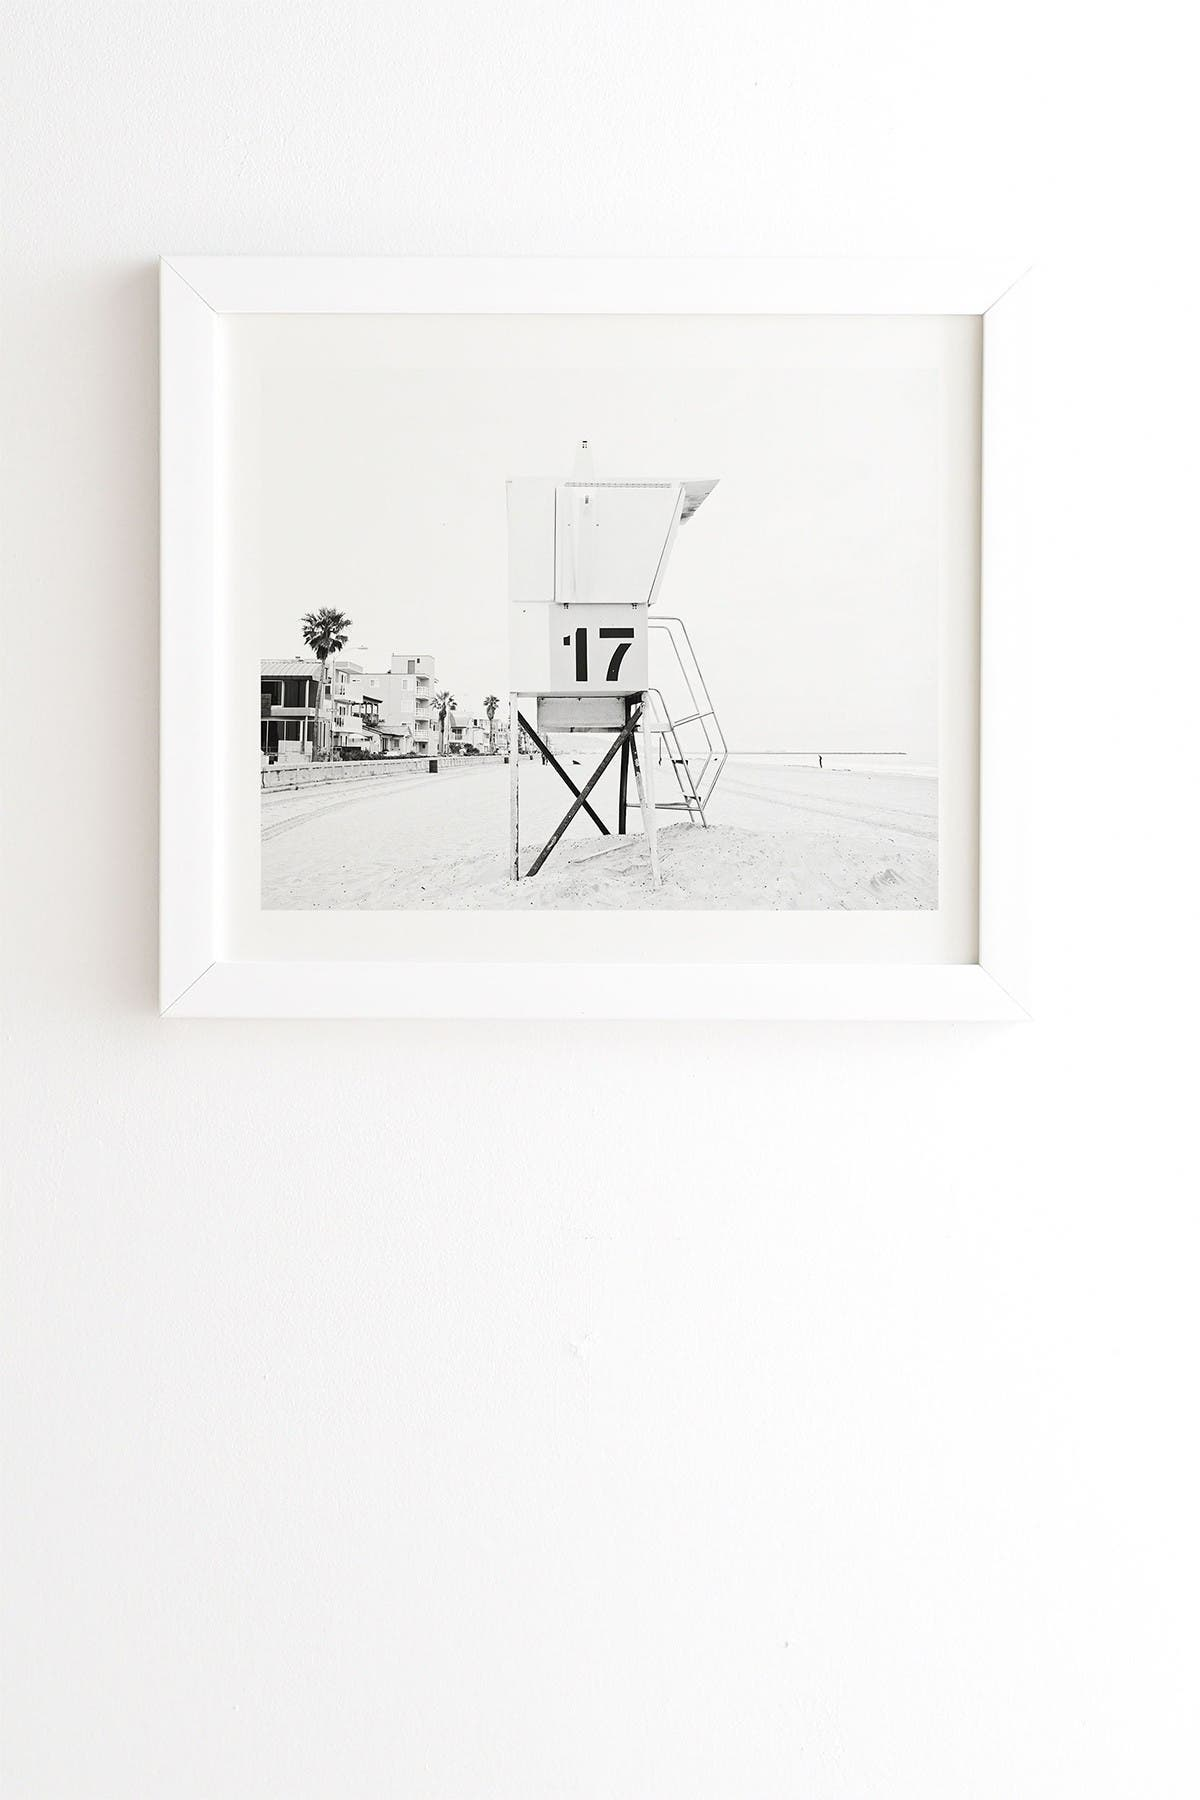 Image of Deny Designs Bree Madden Tower 17 White Framed Art